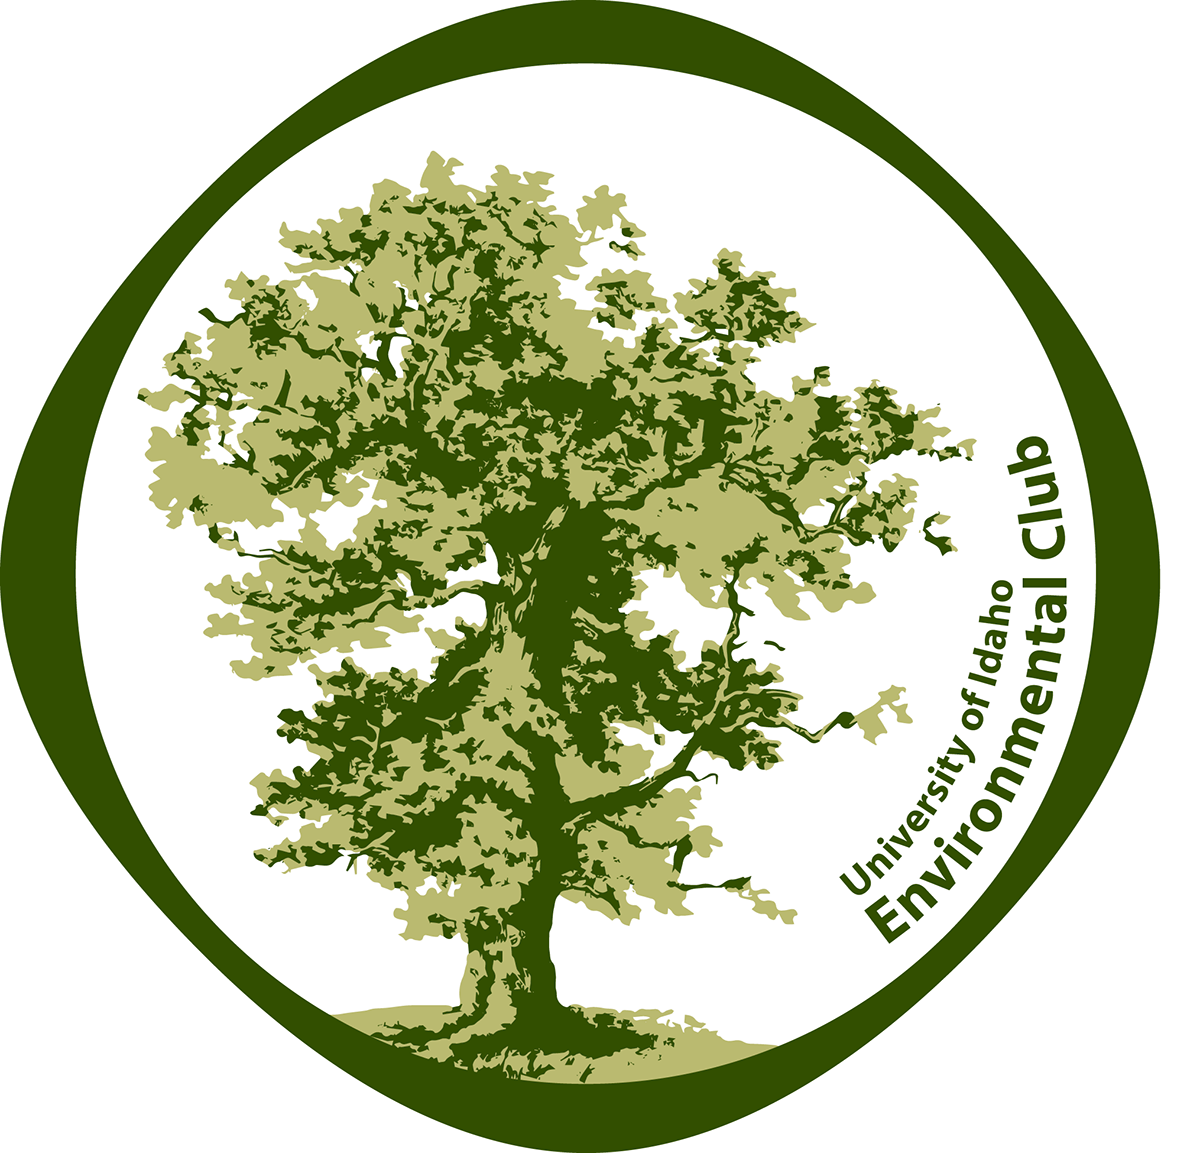 Environment clipart arbor day. Environmental club logo on